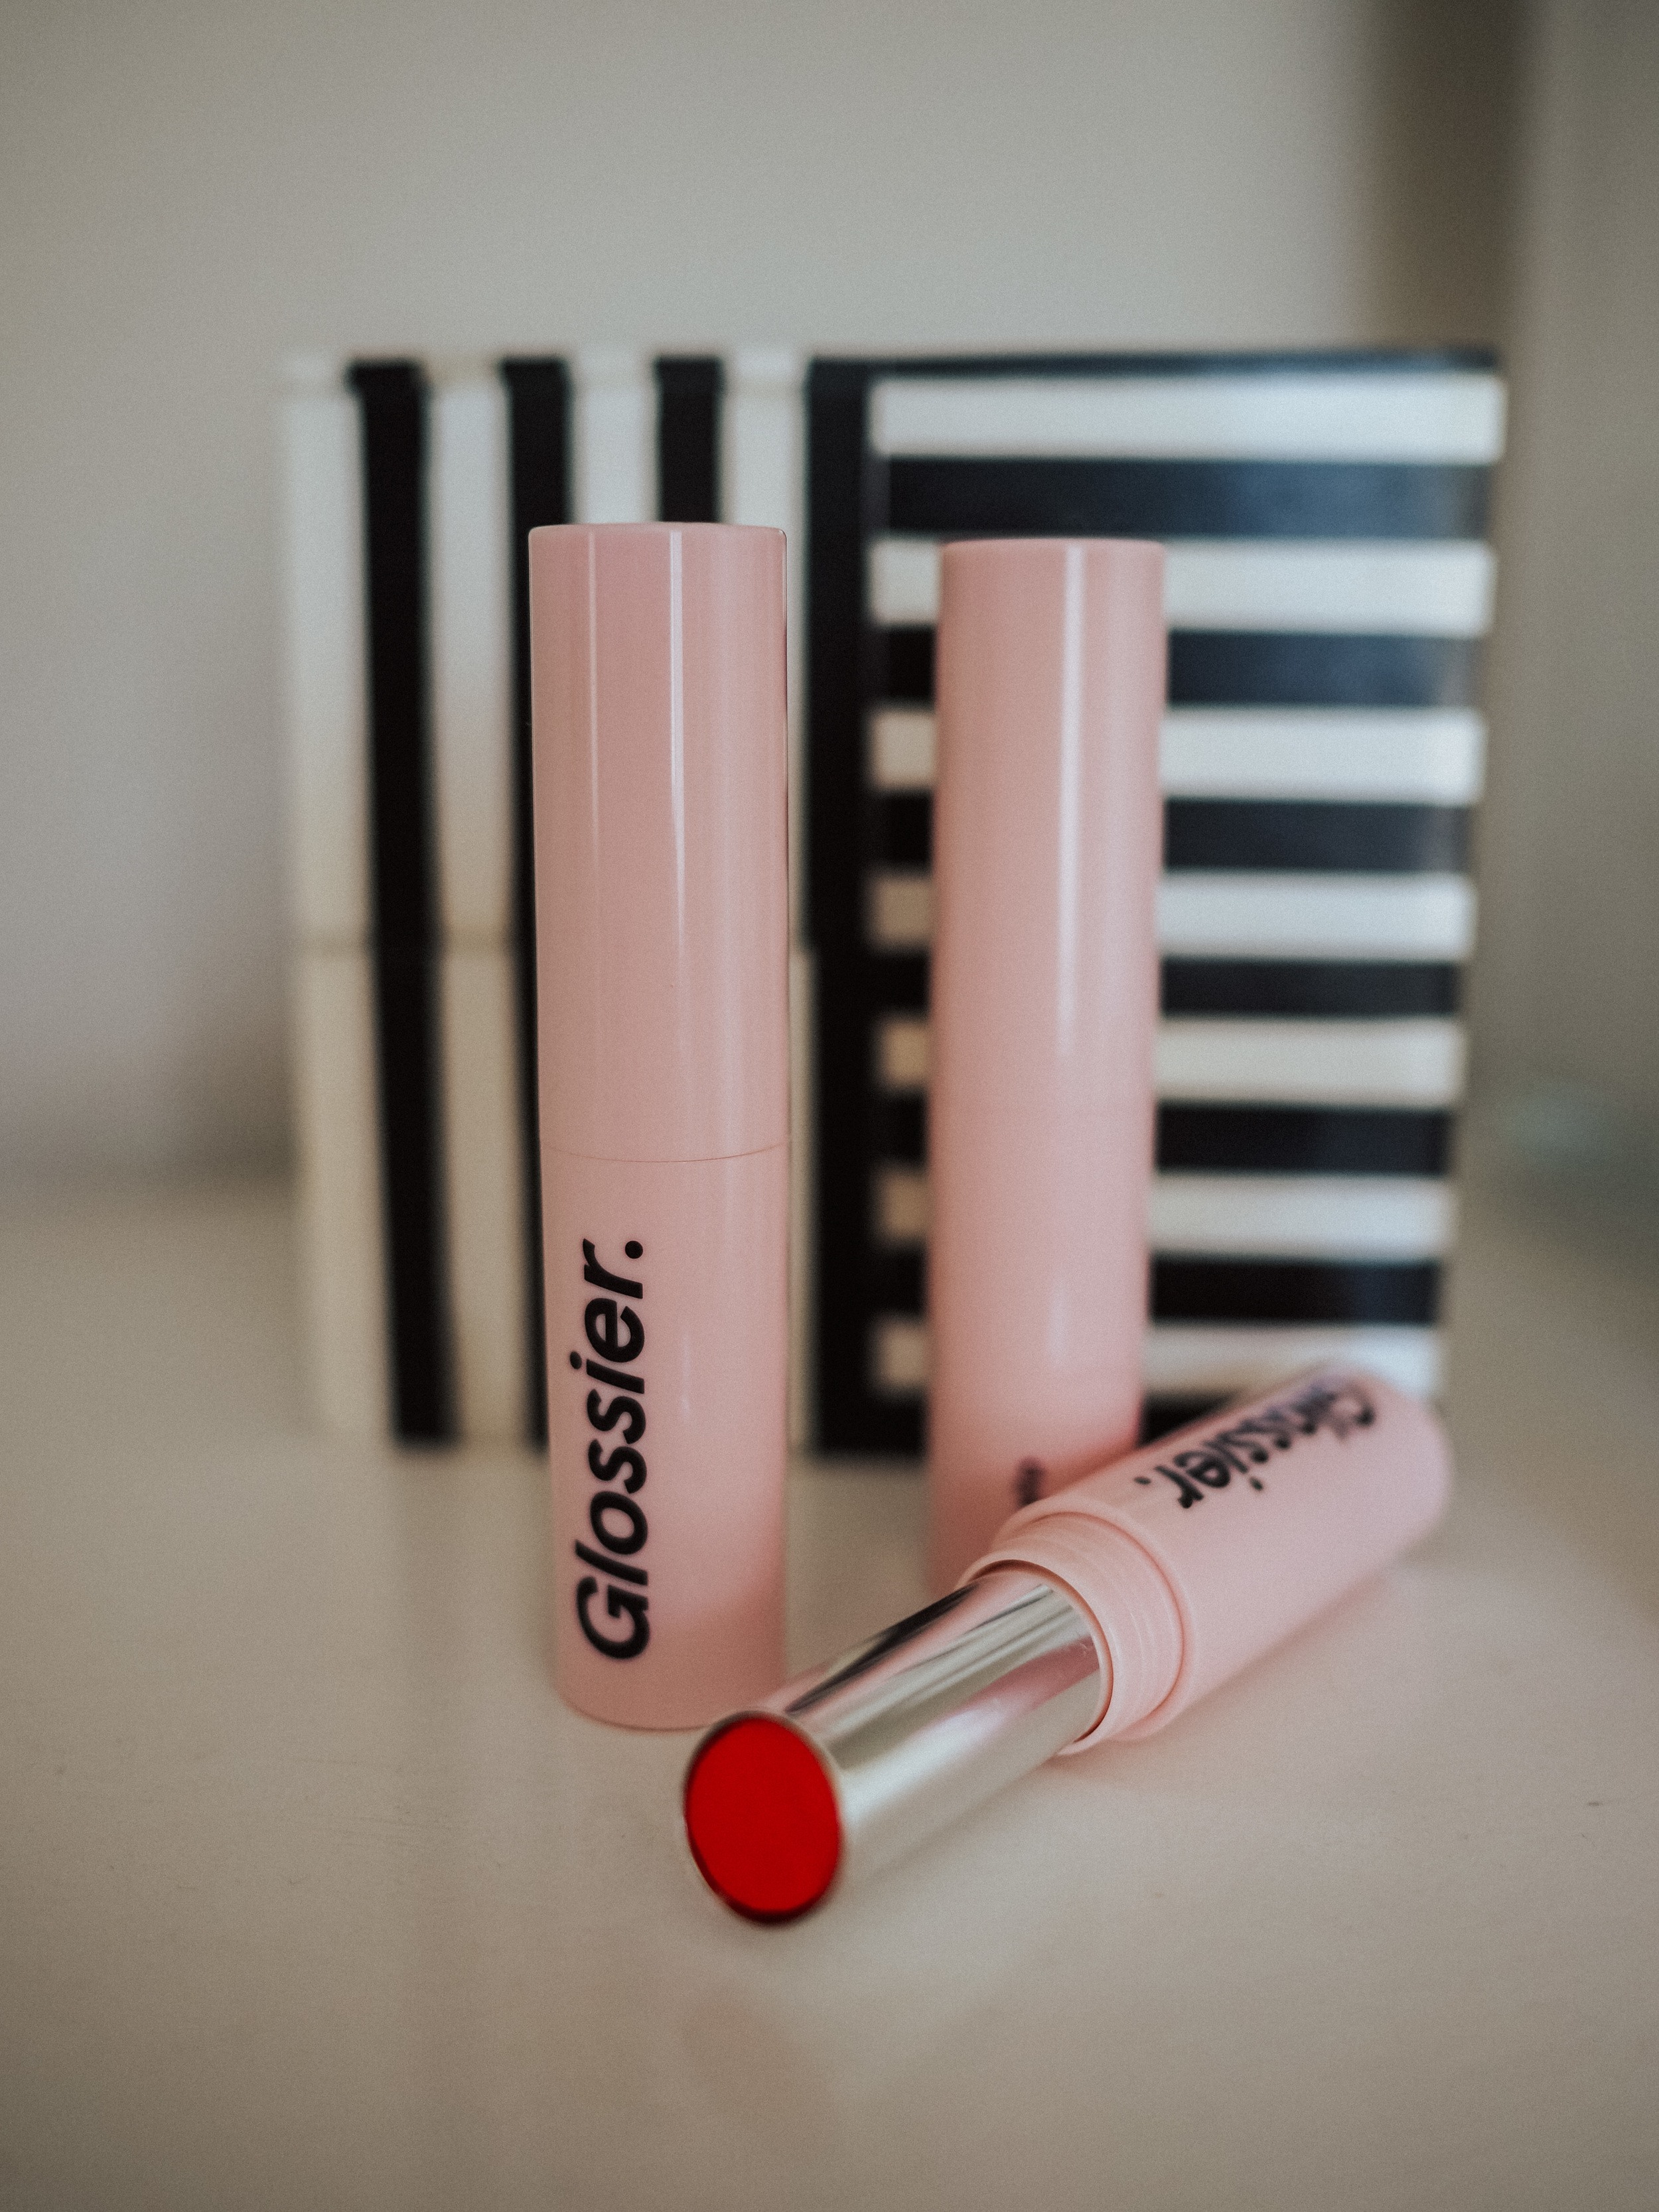 Kelsey from Blondes and Bagels reviews the NEW Glossier Ultralip! Find the pros, cons, and swatches of Ultralip in this review.